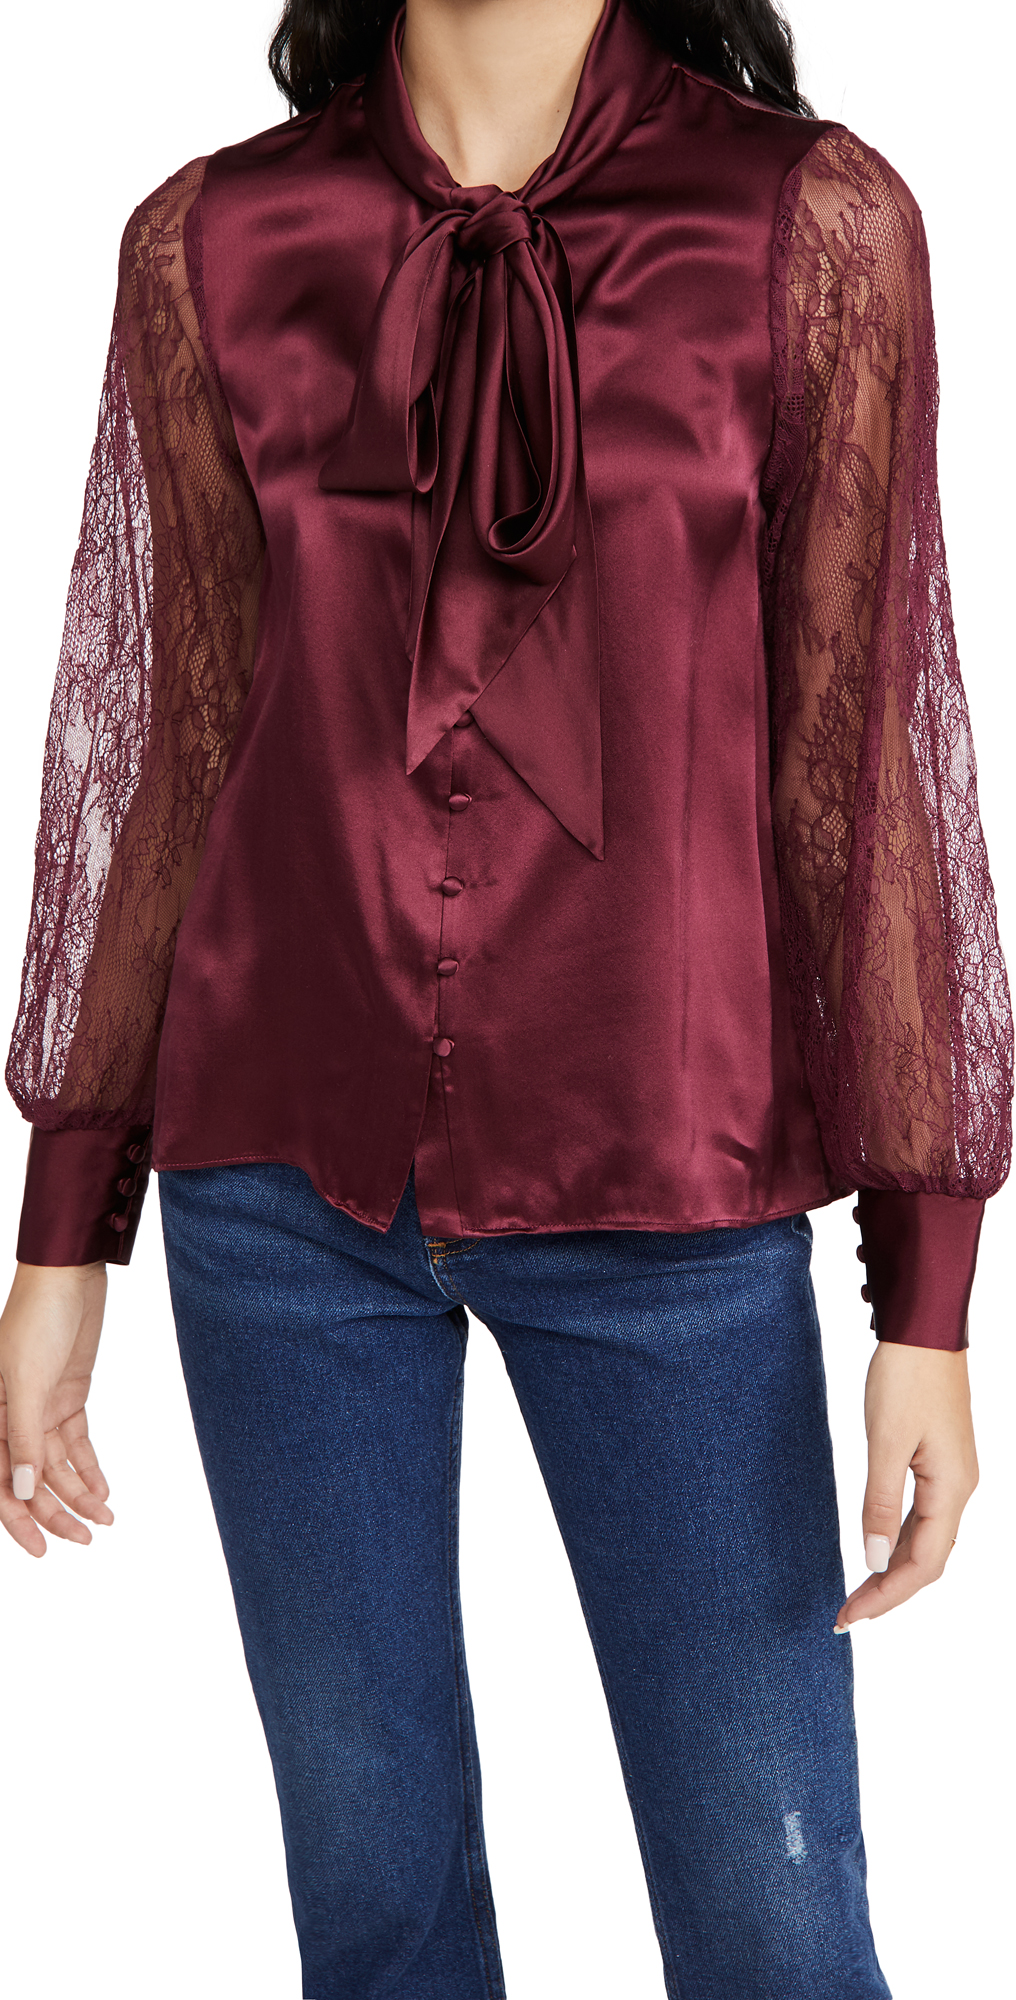 CAMI NYC Camberlyn Cabernet Blouse